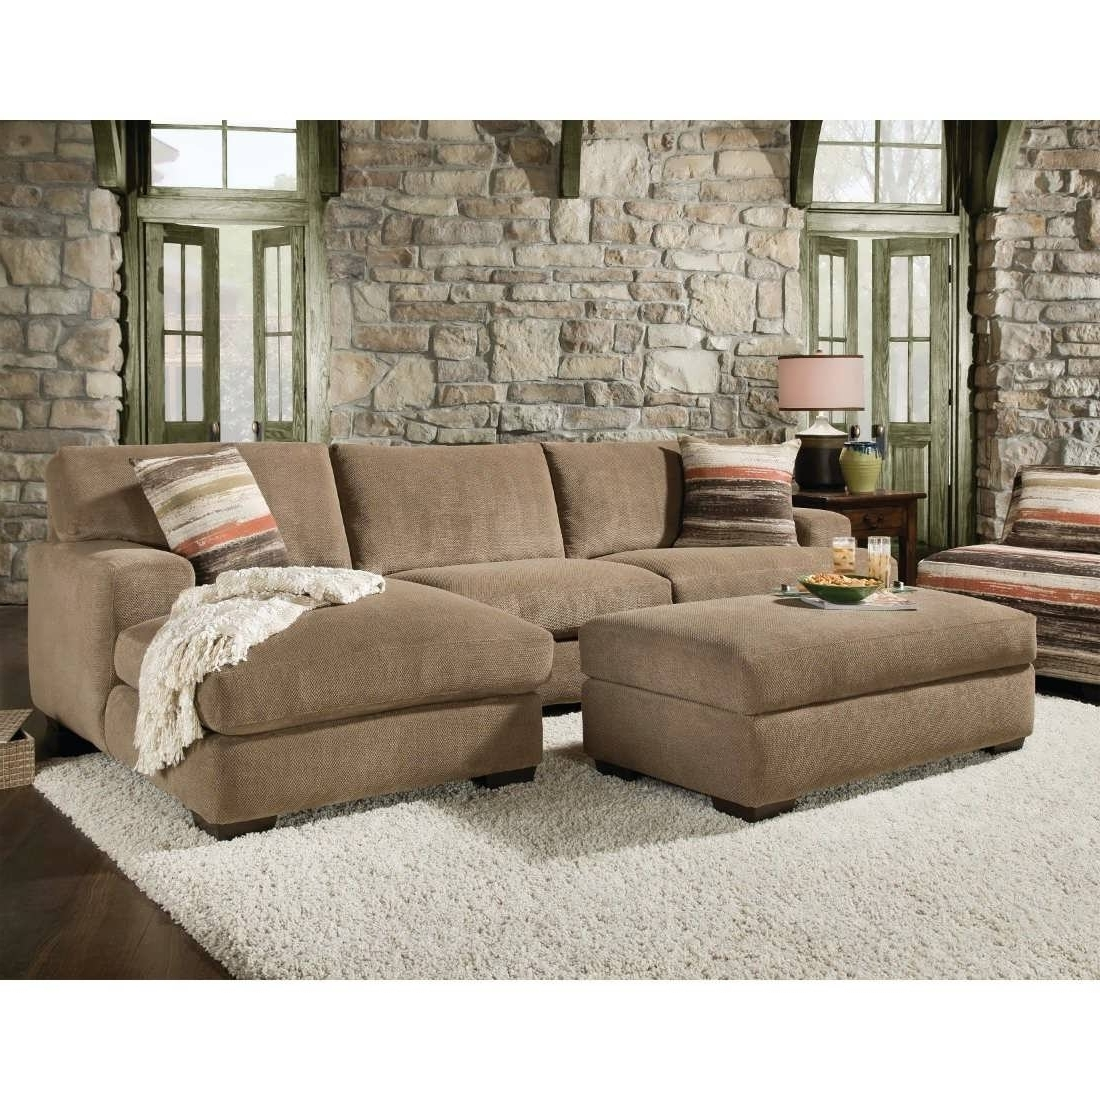 Sofa : Leather Sectional With Chaise Sectional Sofa Bed Oversized With Most Current Beige Sectionals With Chaise (View 3 of 15)